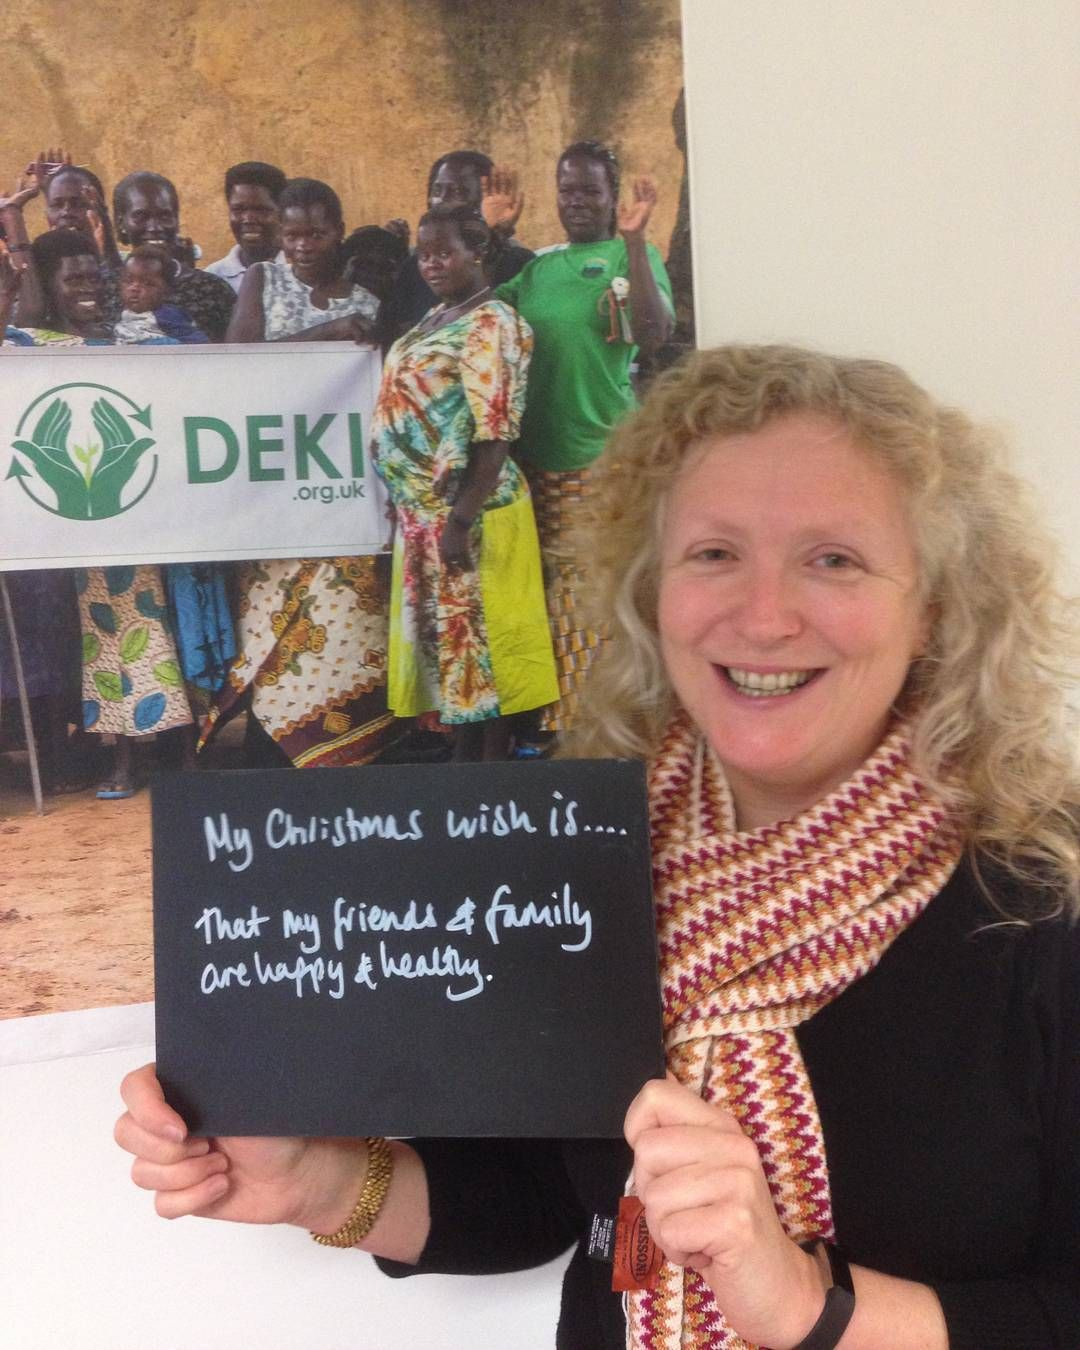 Mel the @deki_charity  CEO has a very personal #MyChristmasWish #Christmas #family #friends #GoodWishes